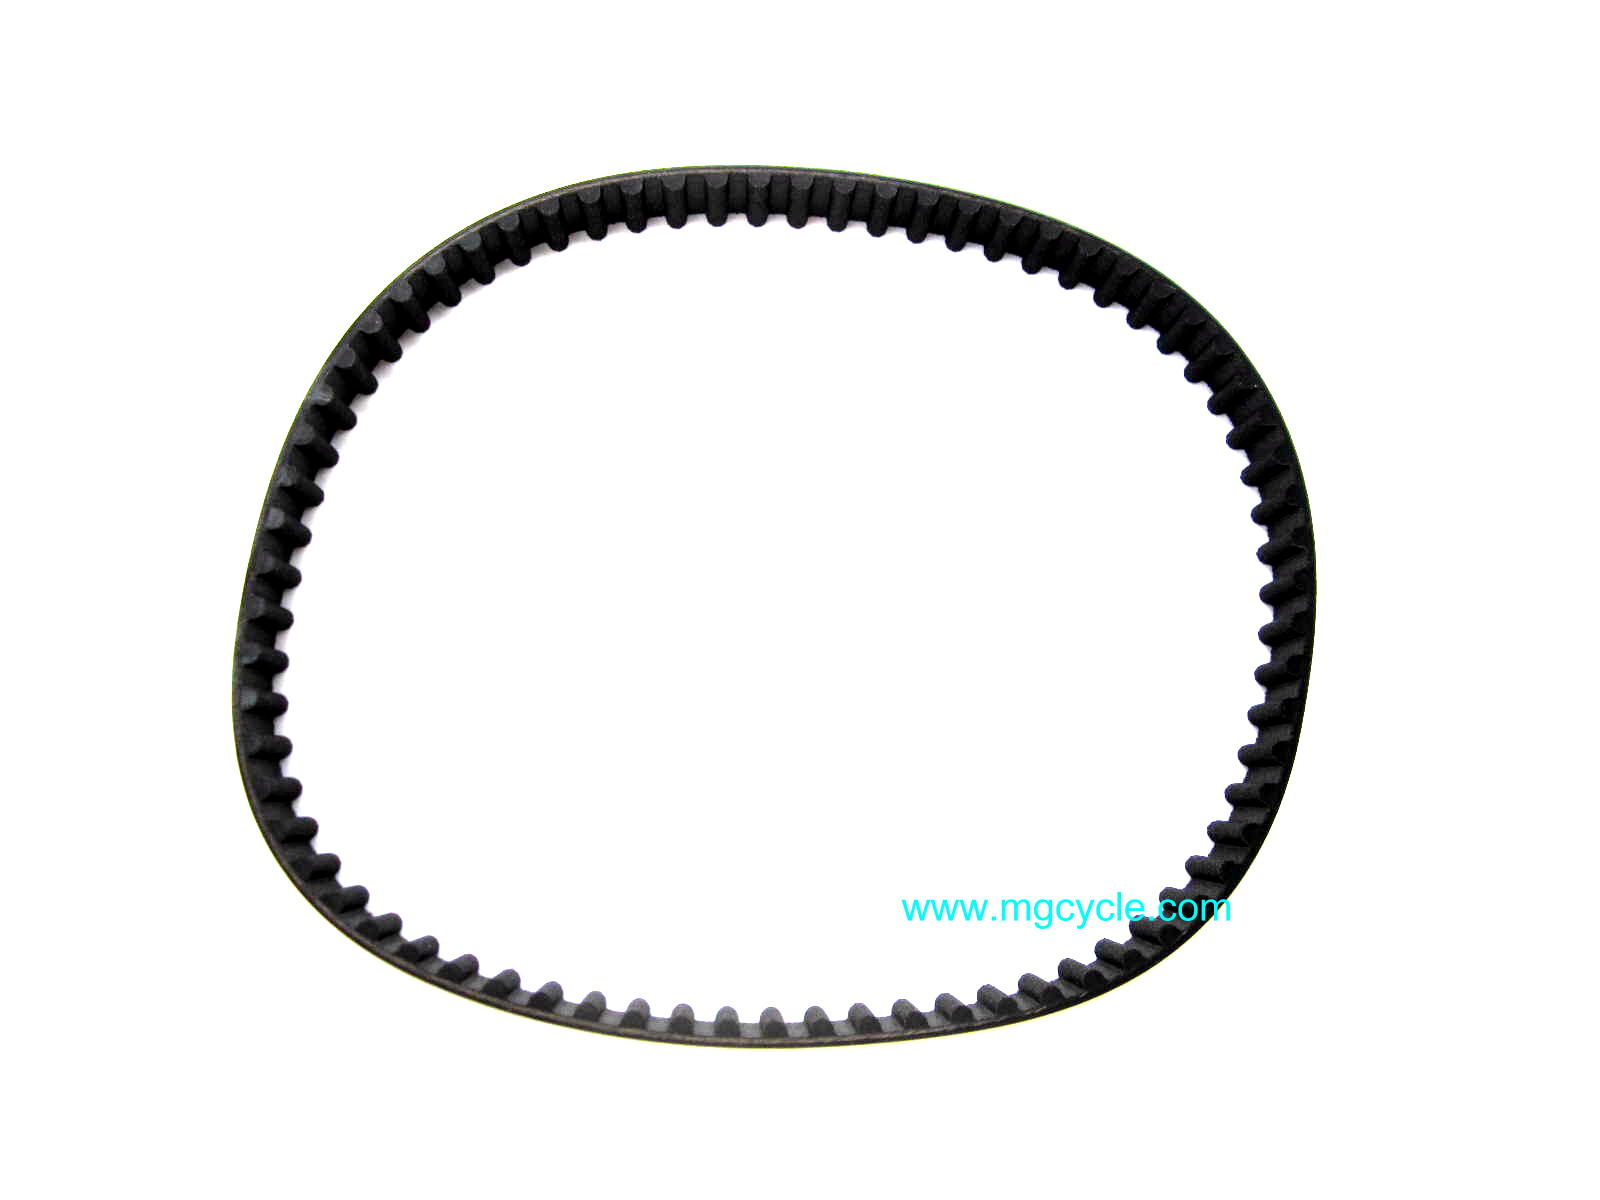 Timing belt for Ducati cam belt 73740242A